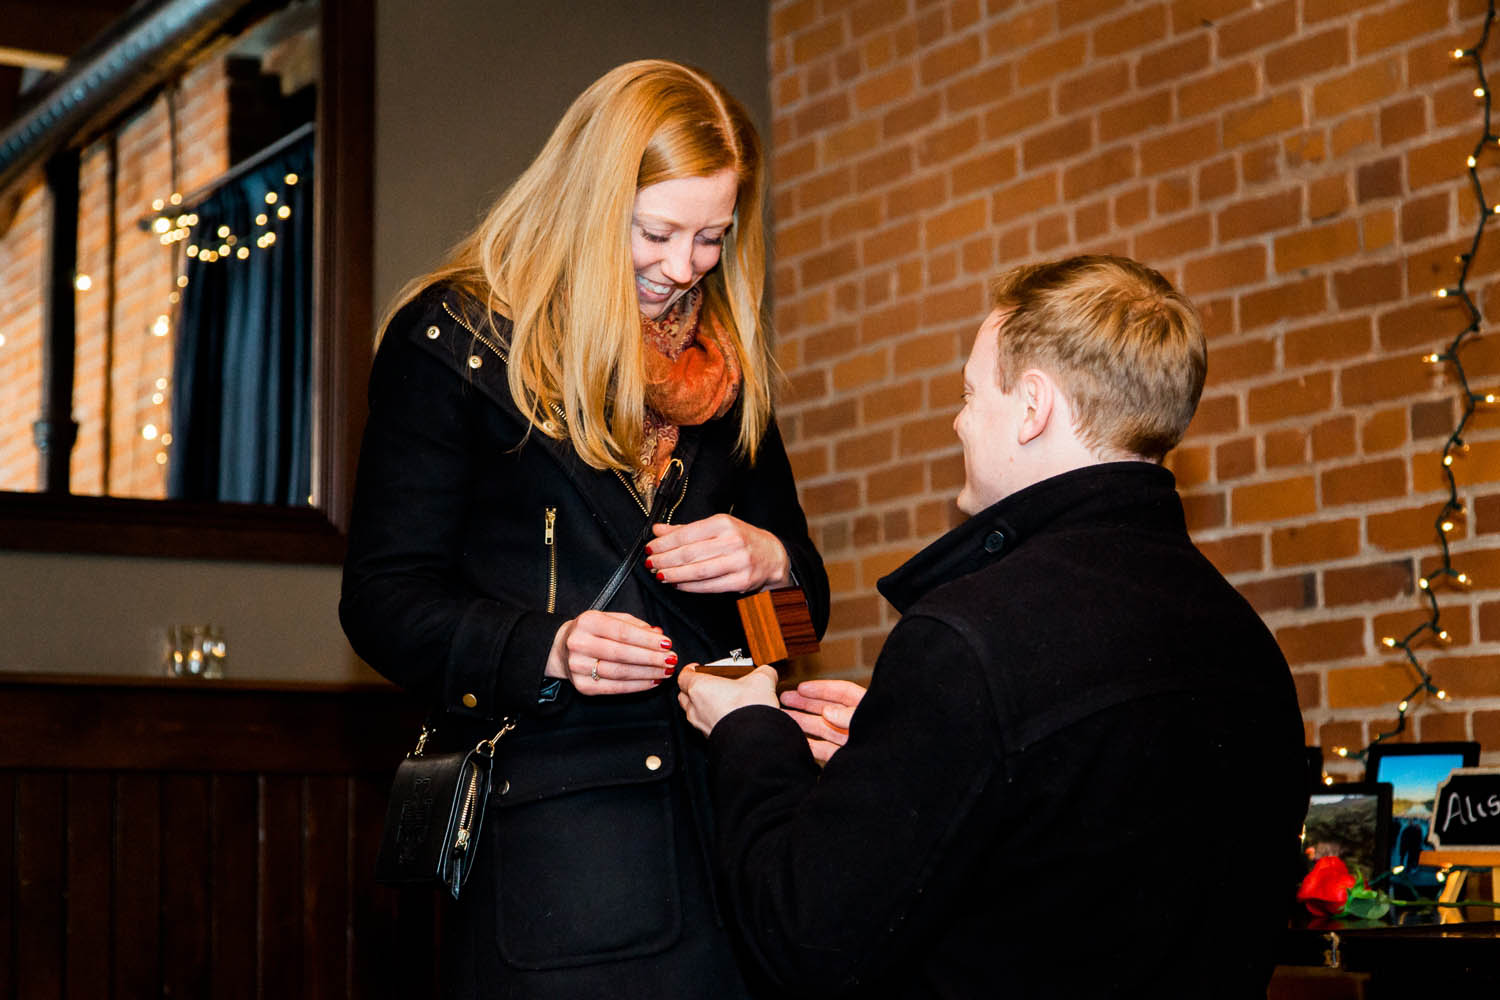 proposal-photos-minneapolis-bernadette-pollard-0013.jpg